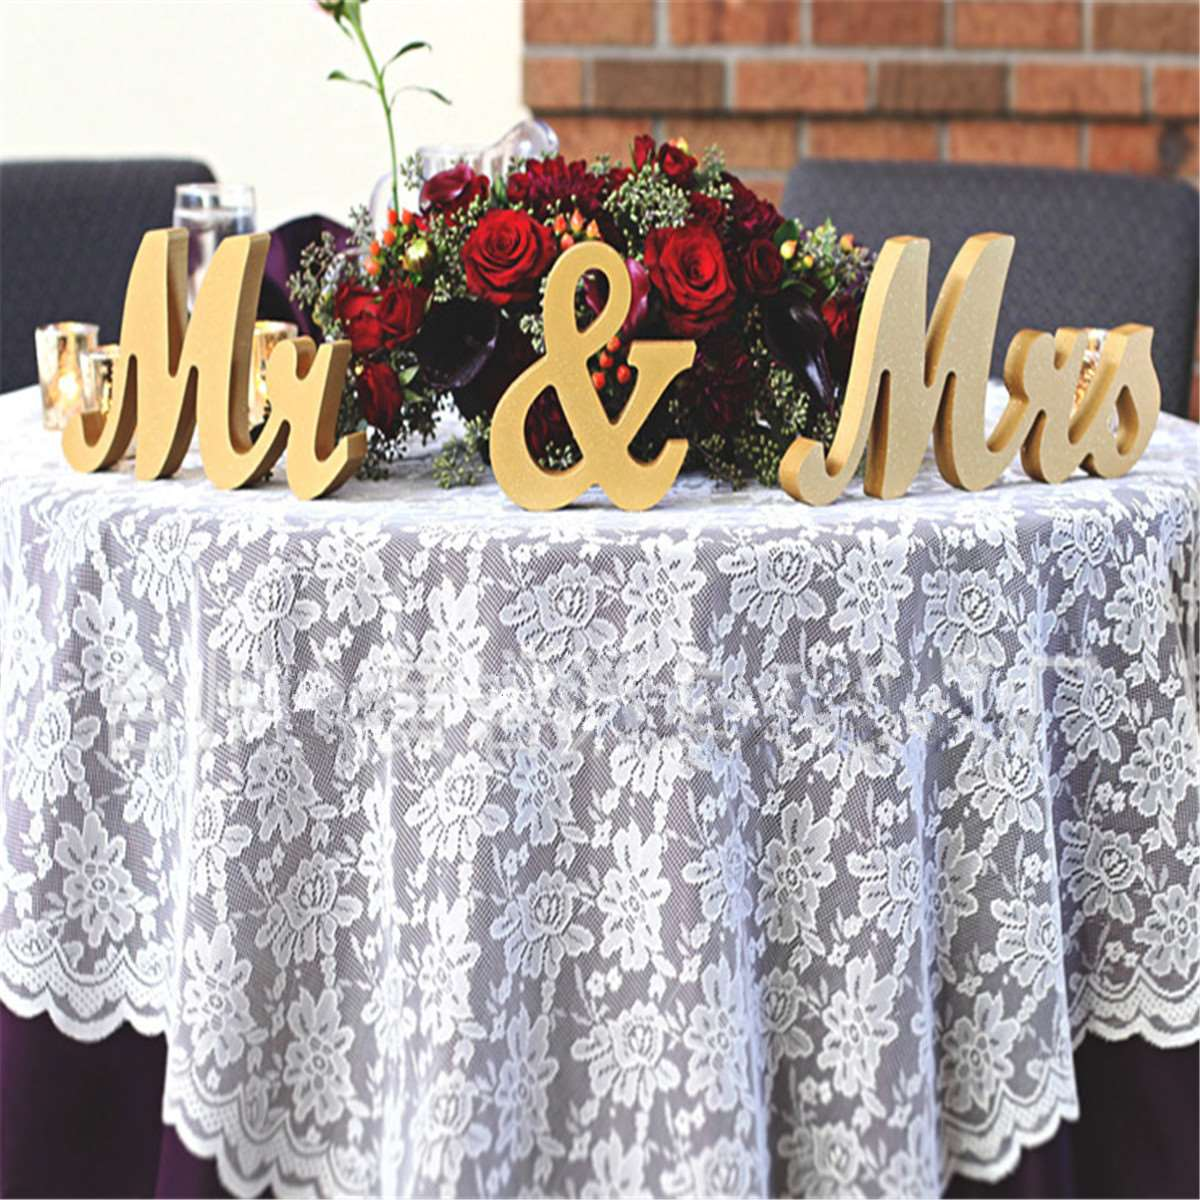 Gold Wooden Mr & Mrs Standing Letters Wedding Table Centrepiece Reception Sign Party Wedding Decoration Party Supplies